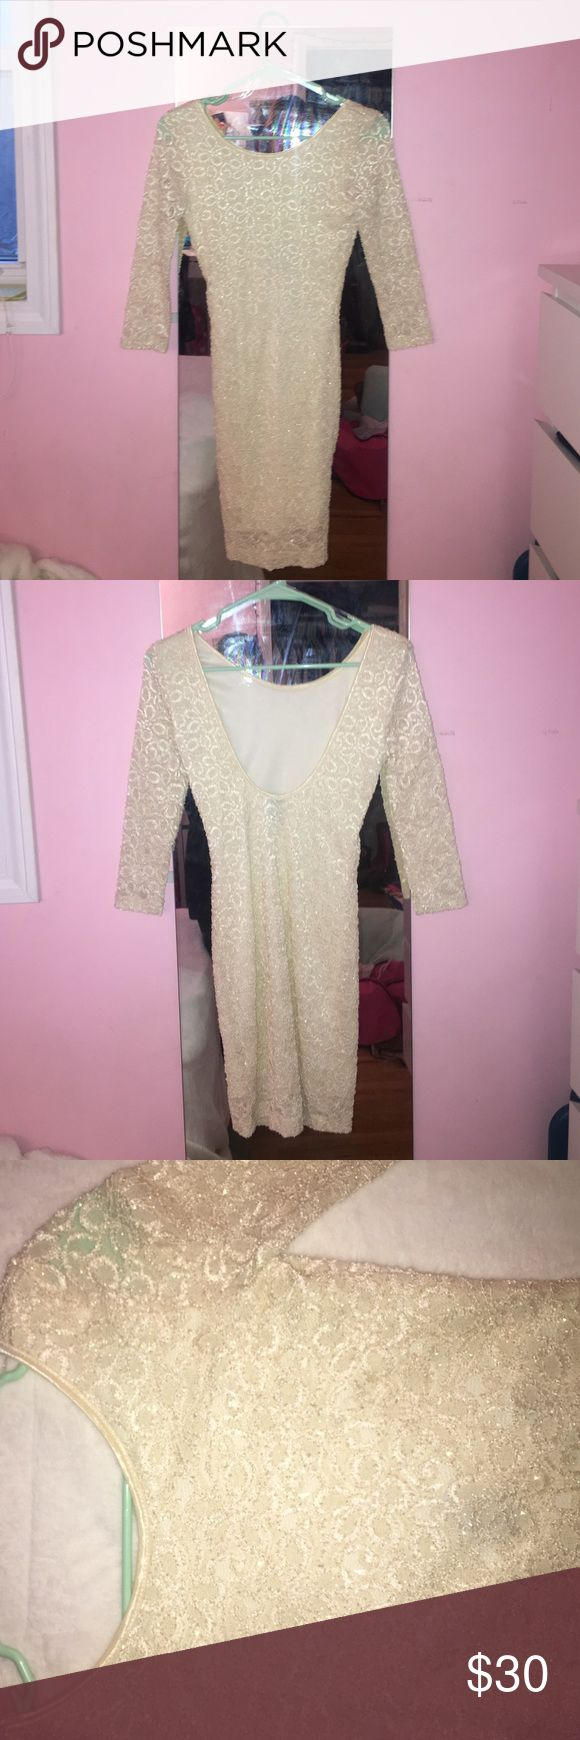 Windows body con dress Sparkly, cream body con dress from Windsor! Low cut U shaped open back. Cream lining with patterned lace overlay. WINDSOR Dresses Mini